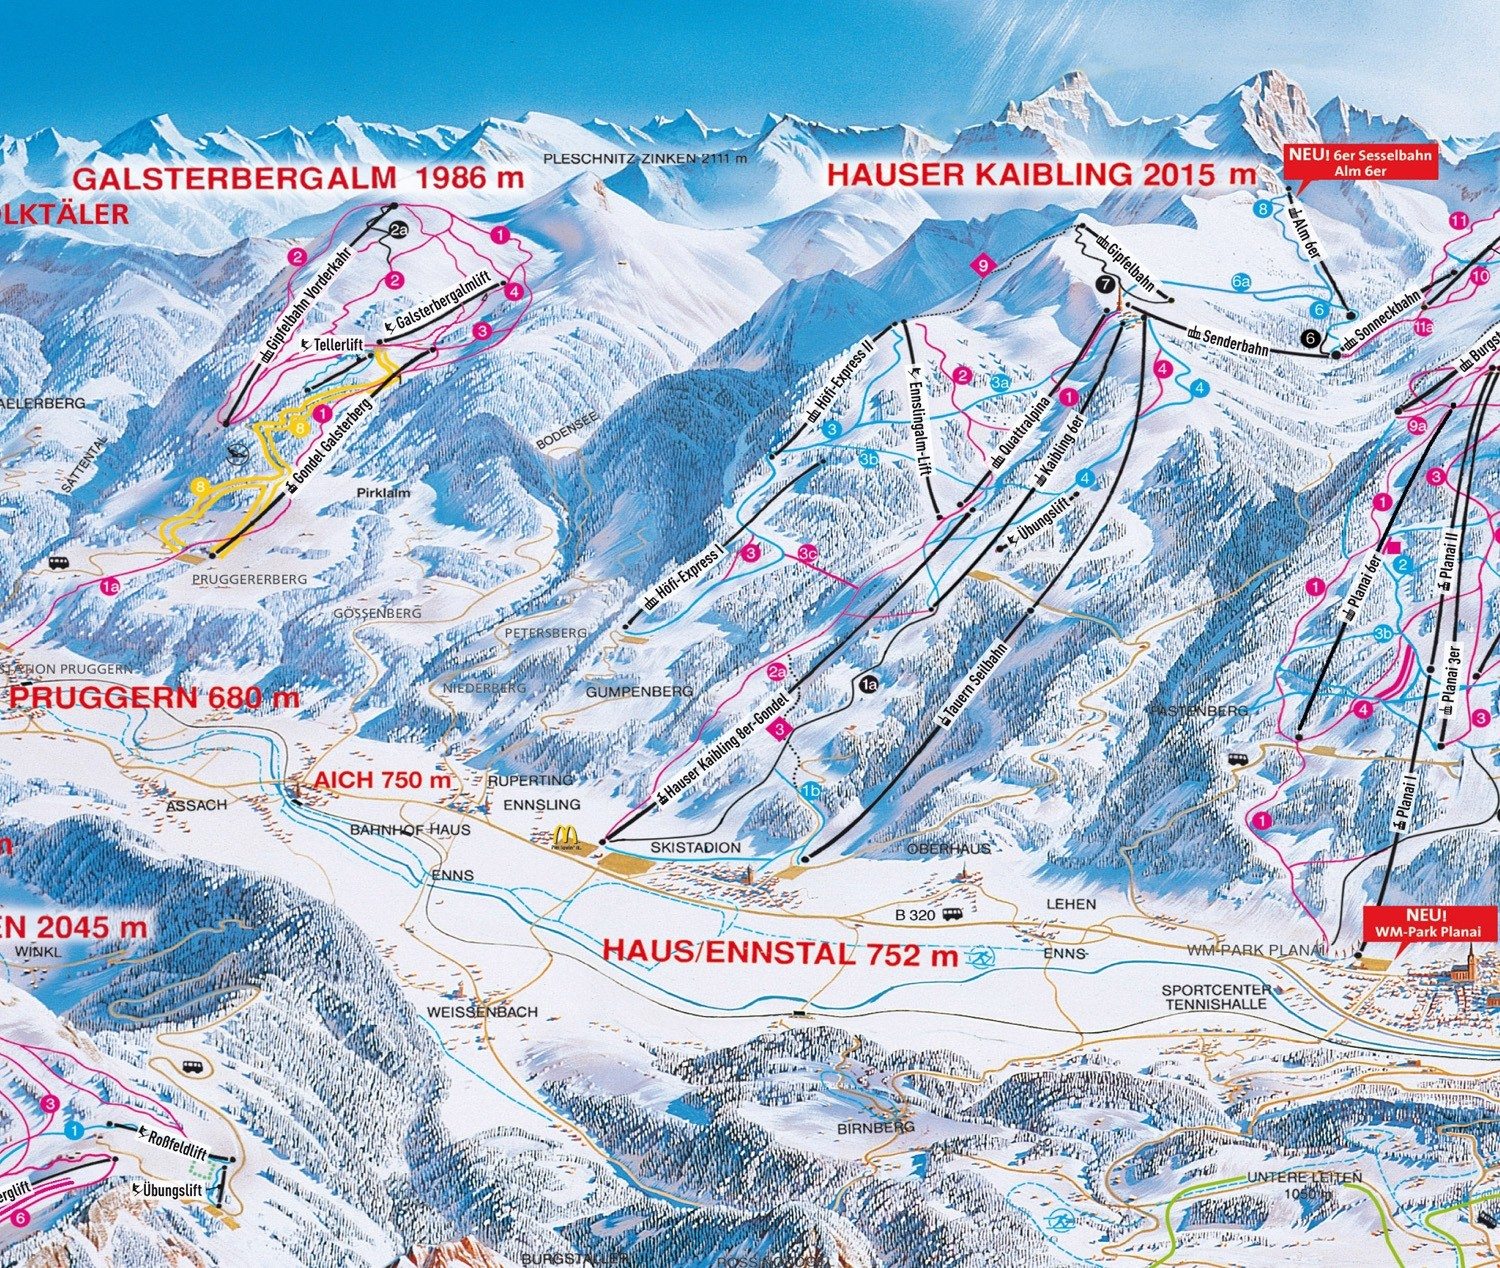 cross country skiing trail map hauser kaibling schladming ski amade nordic trail map. Black Bedroom Furniture Sets. Home Design Ideas